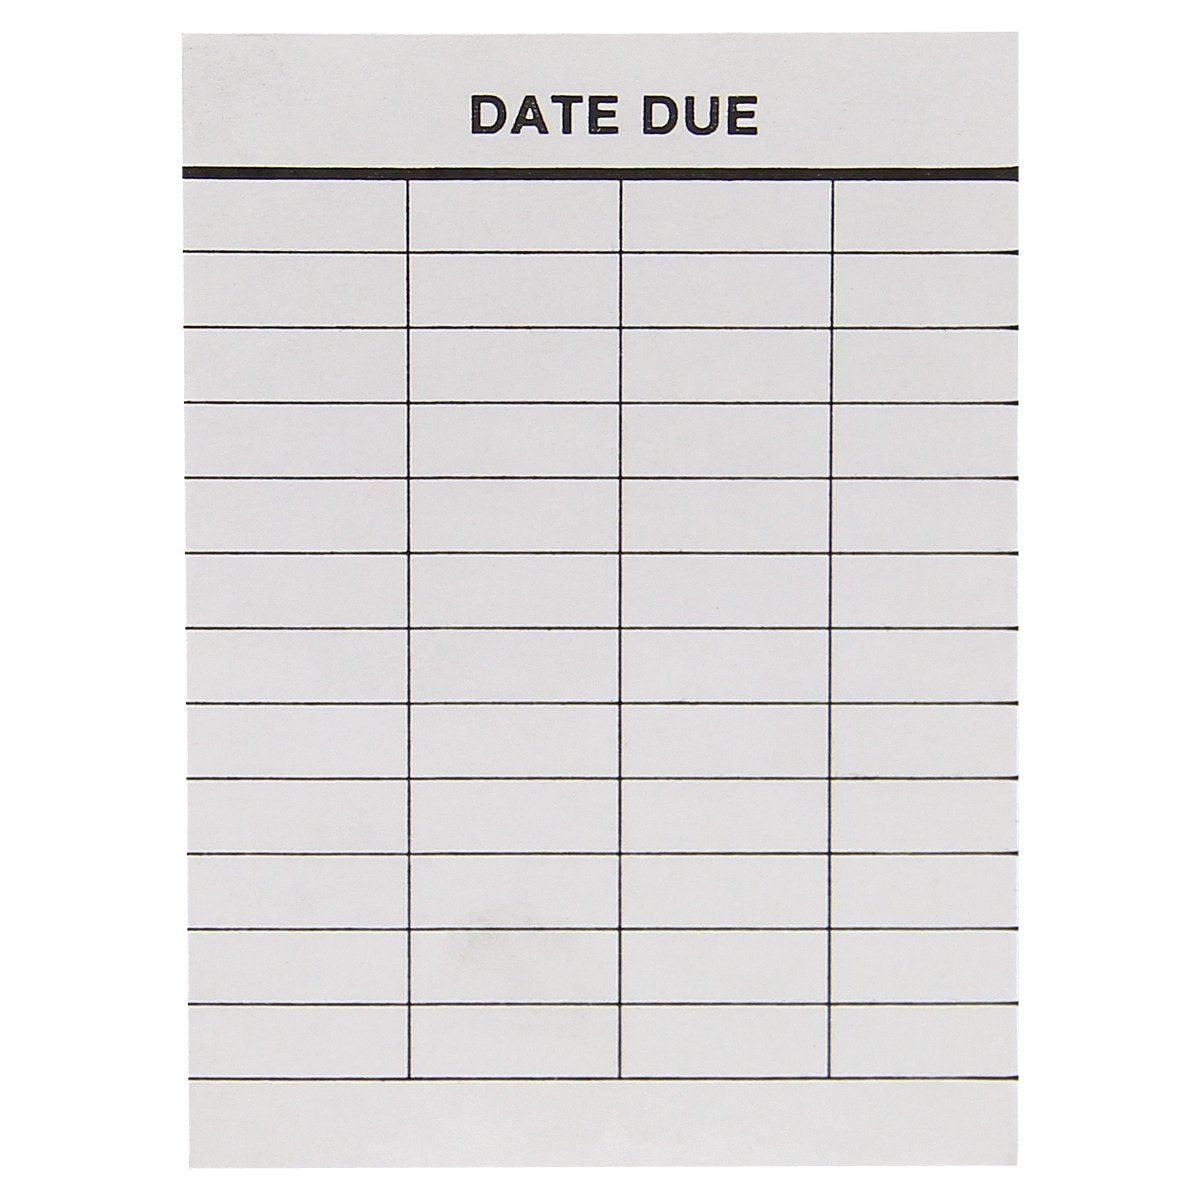 Date Due Slips For High Back Book Pockets - 4 Columns - 3 3/4''H x 2 3/4W'' - Full Removable Adhesive - 500pk